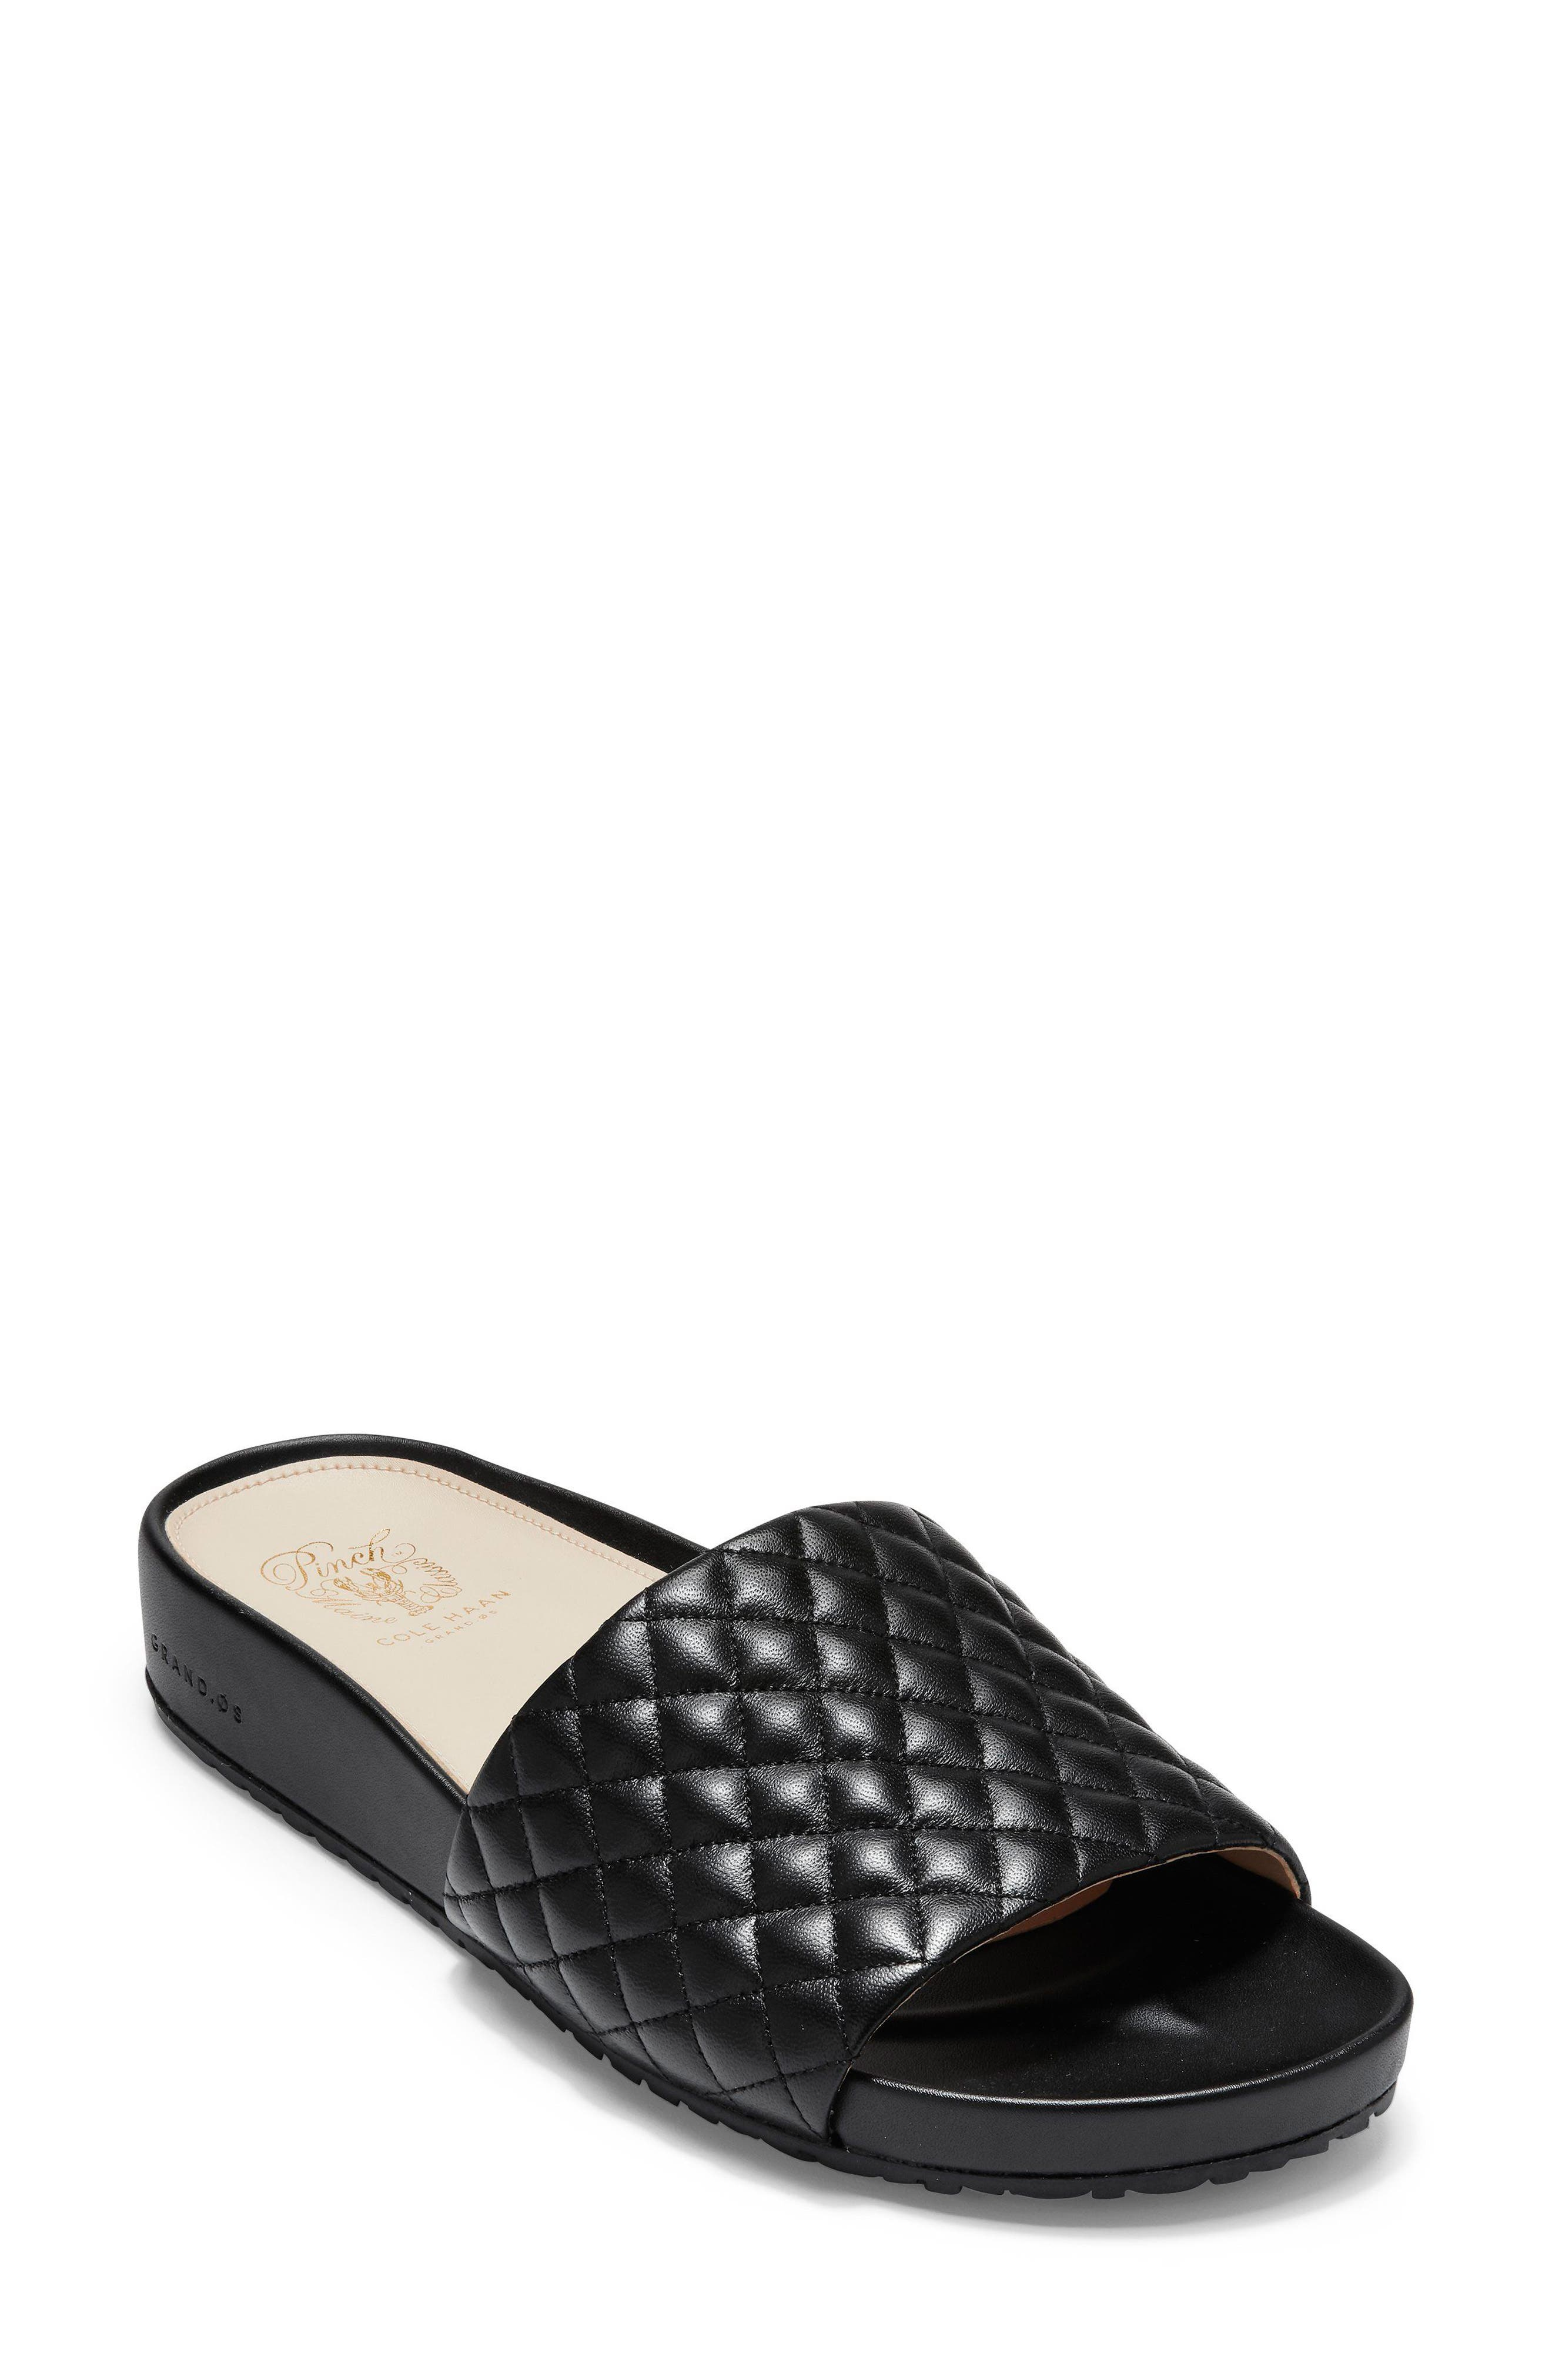 Pinch Montauk Slide Sandal,                         Main,                         color, Black Quilted Leather